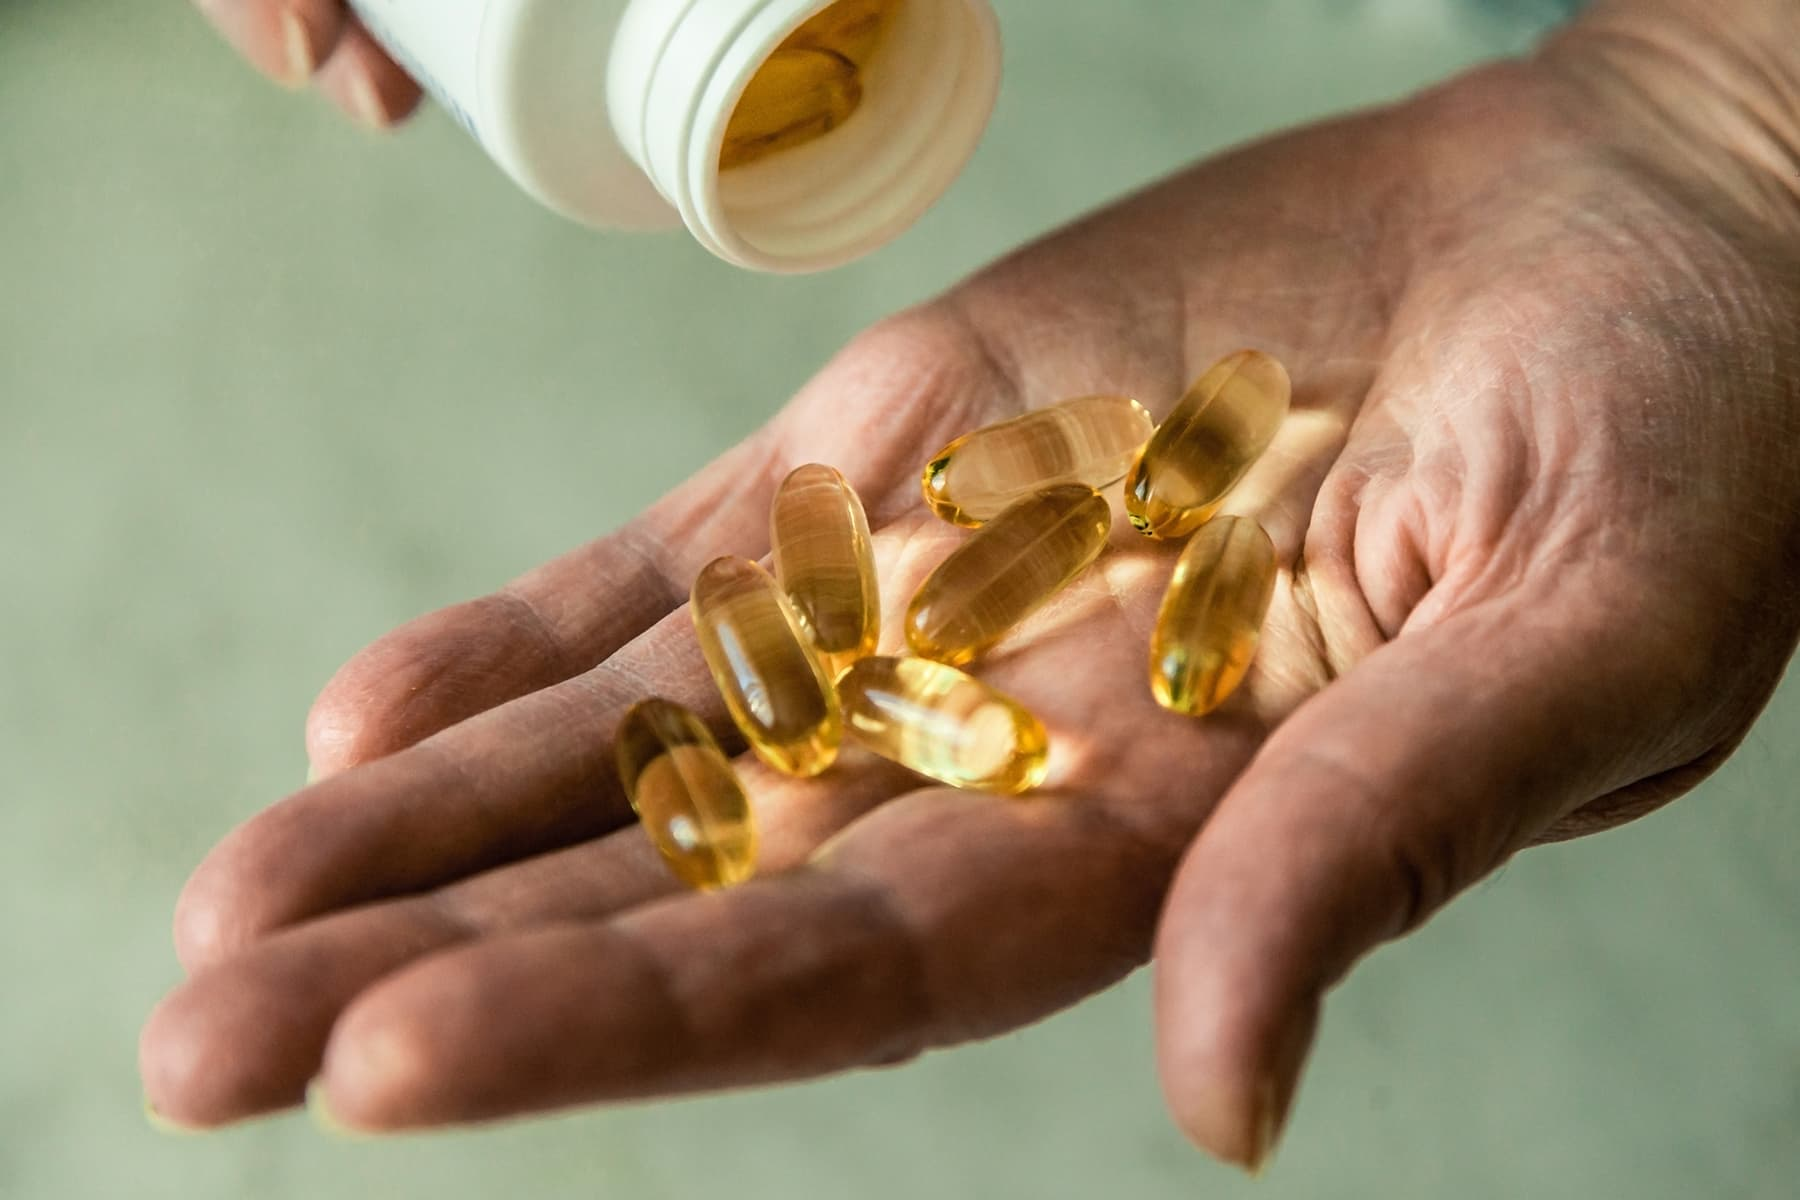 BENEFITS OF FISH OIL FOR BODY